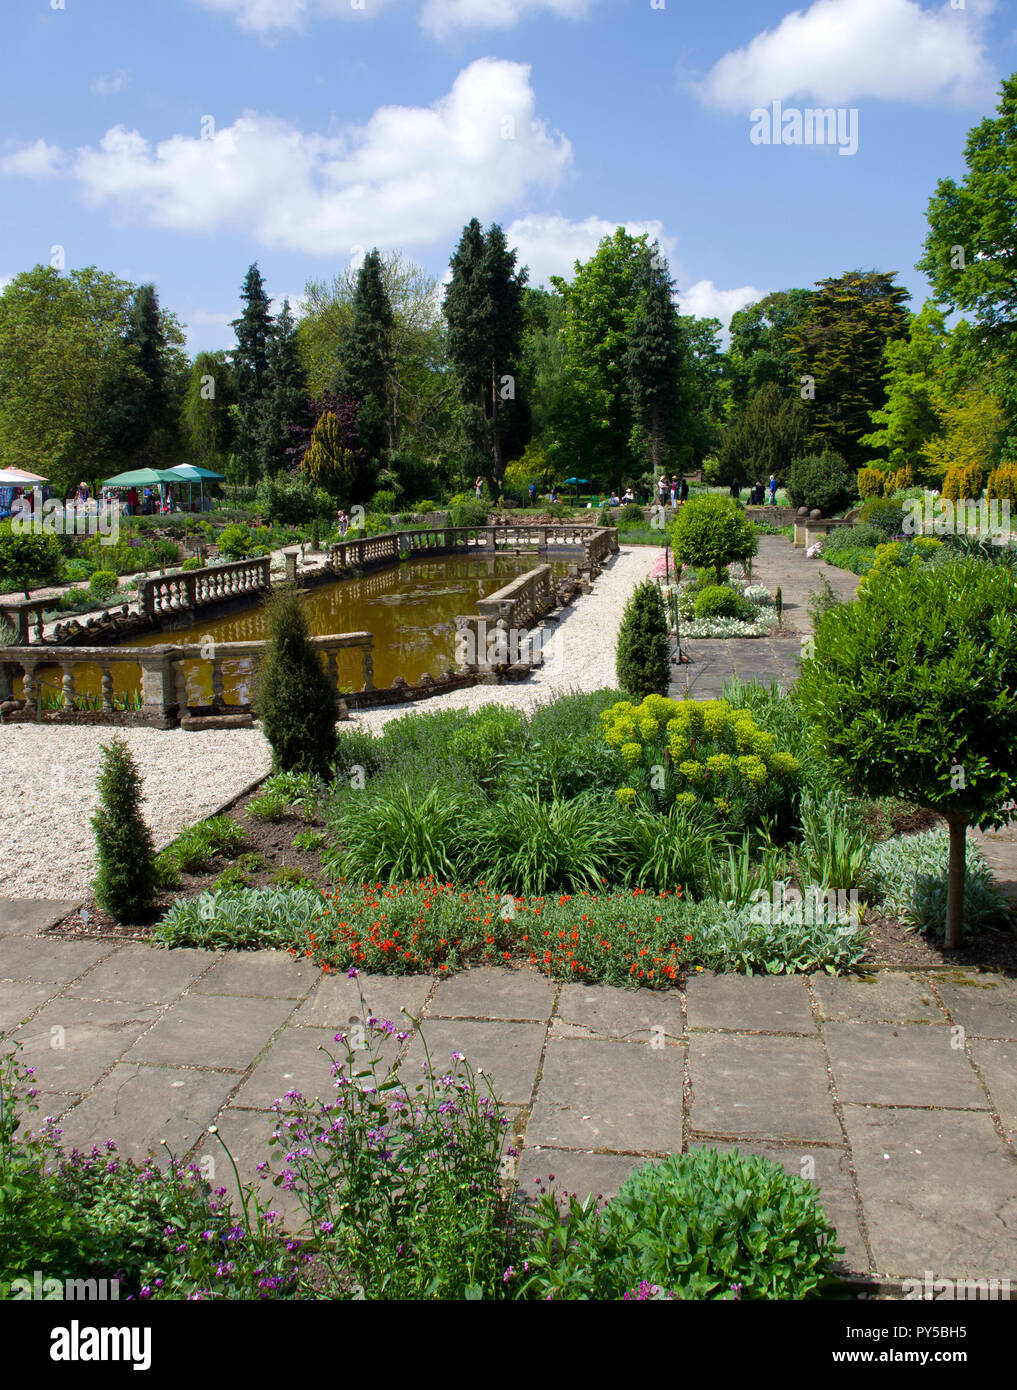 Restored Forgoten Gardens of Esaton Lodge west of Great Dunmow designed by Harold Peto i 1902 for Daisy, Countess of Warwick - Stock Image